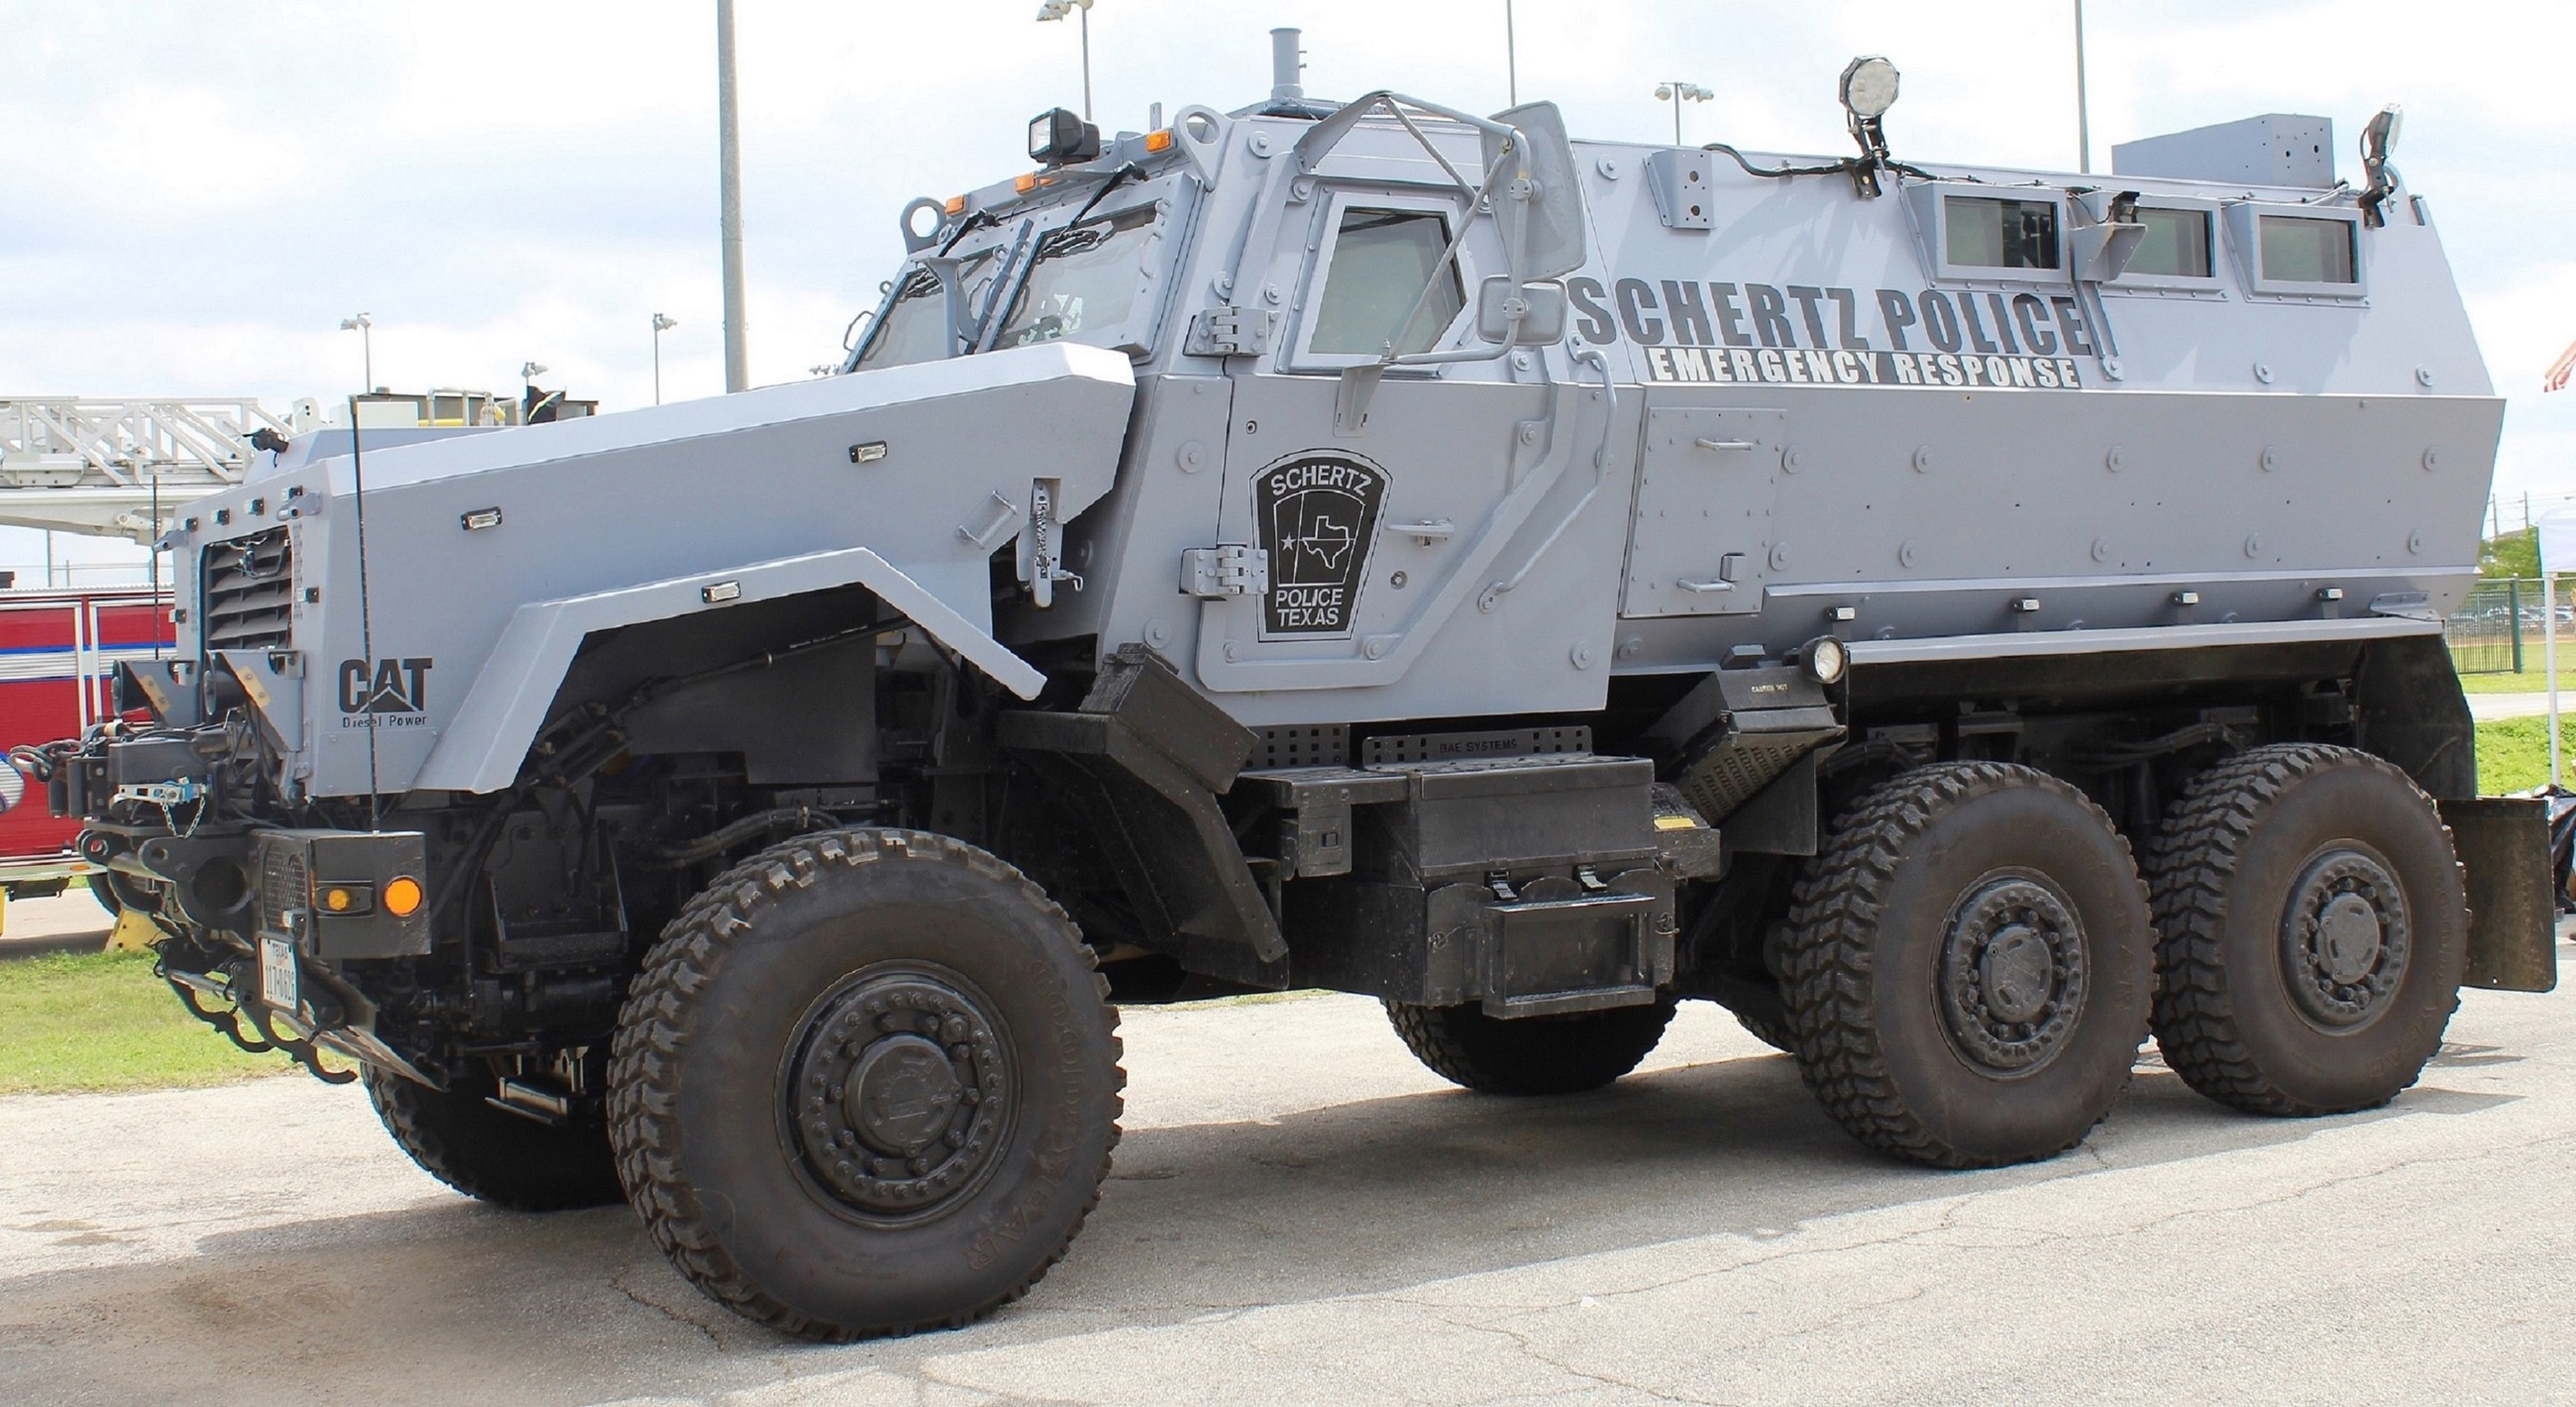 Schertz Police Emergency Response Vehicle